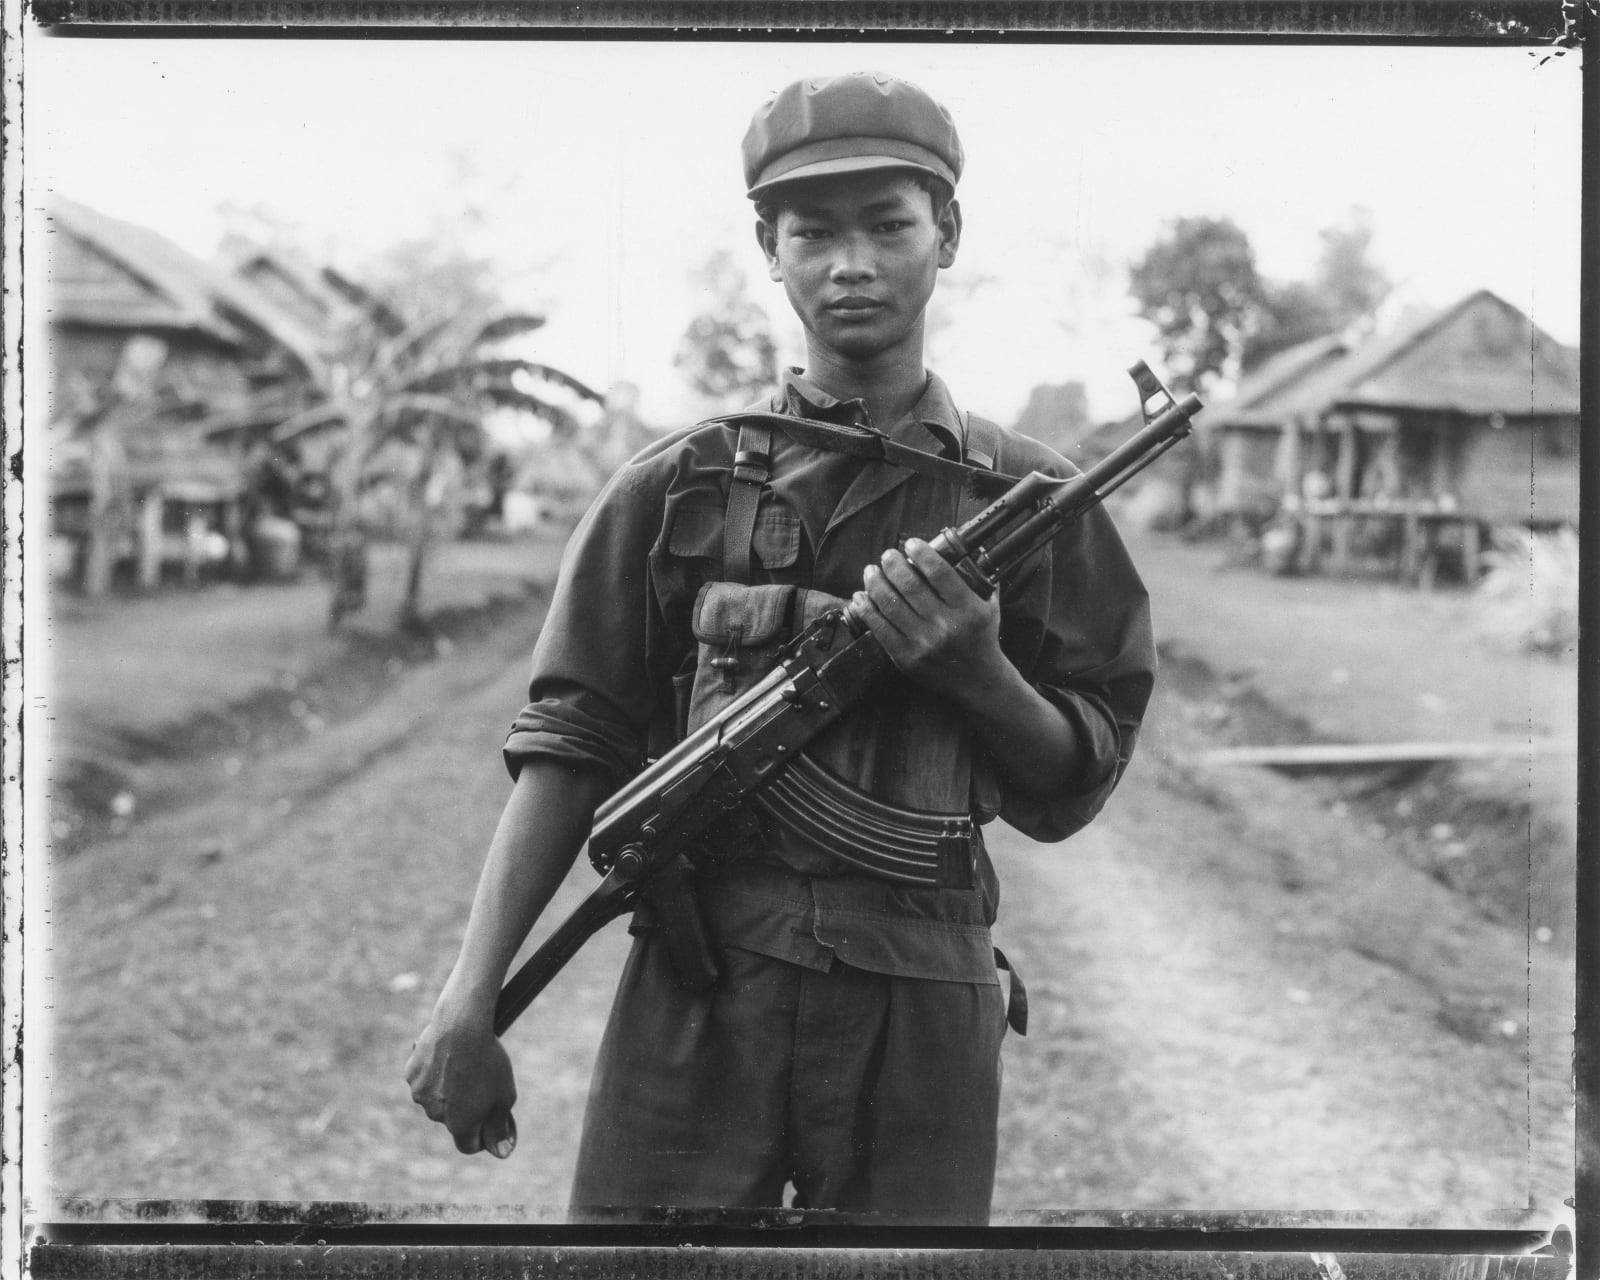 Bill Burke - Khmer Rouge Soldier with AK, Nong Pru, 1984